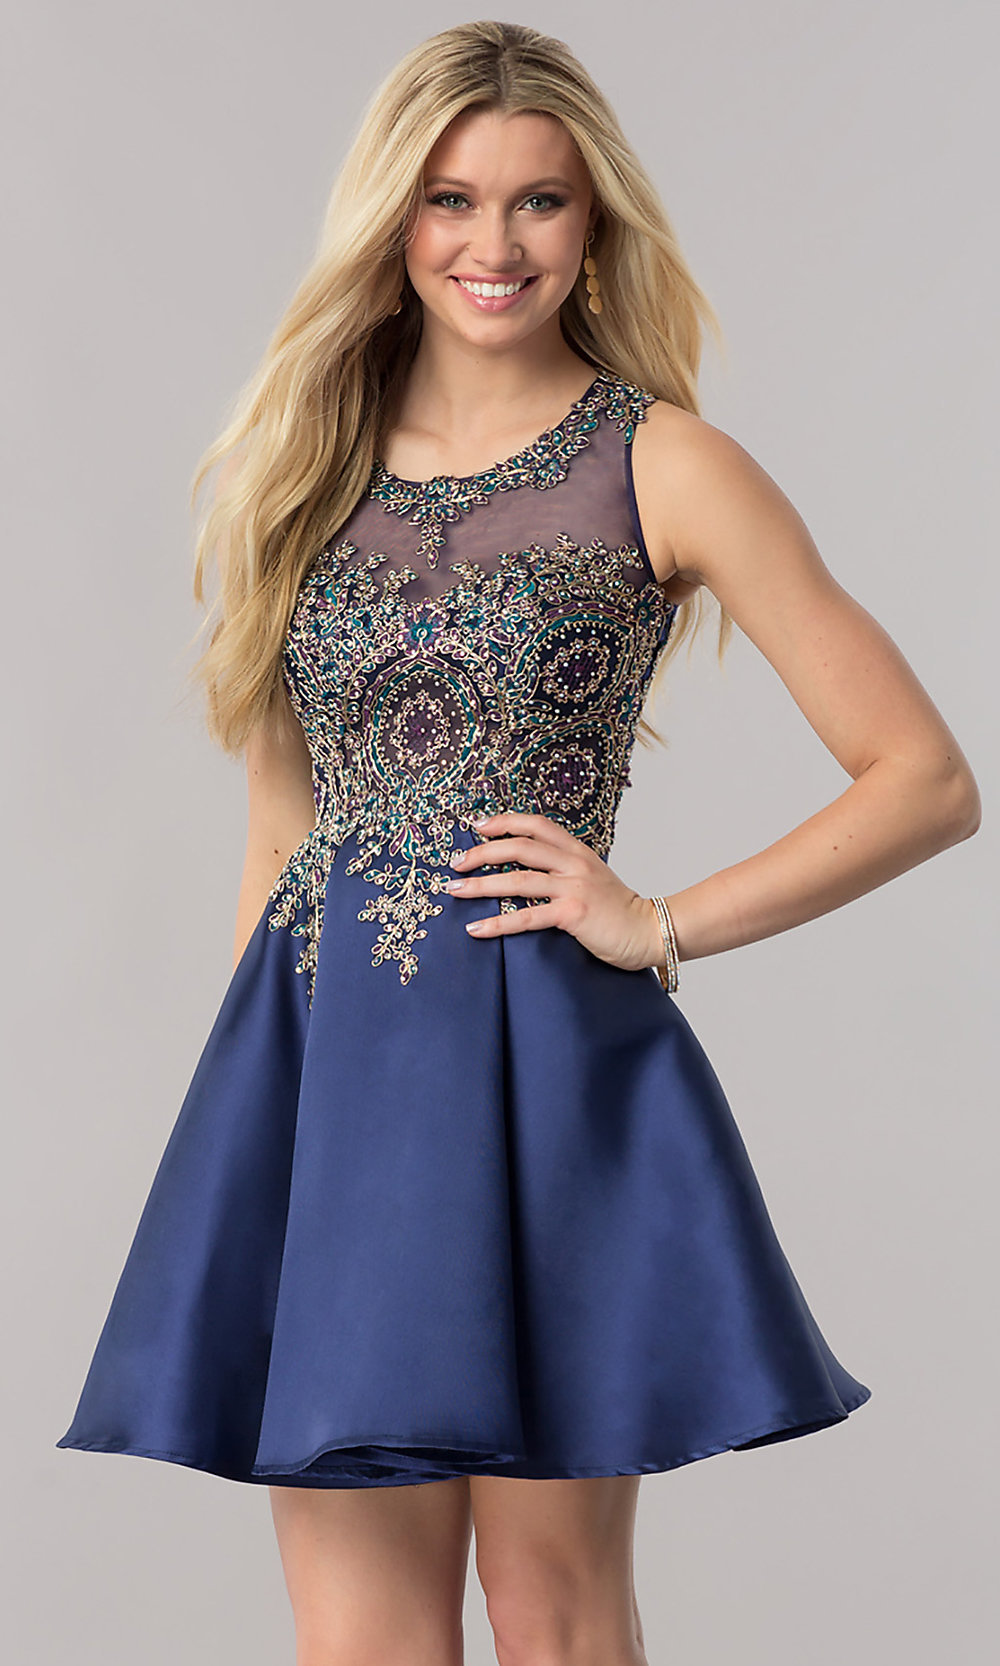 96ceddec9bc5 Short Navy Blue Homecoming Party Dress - PromGirl